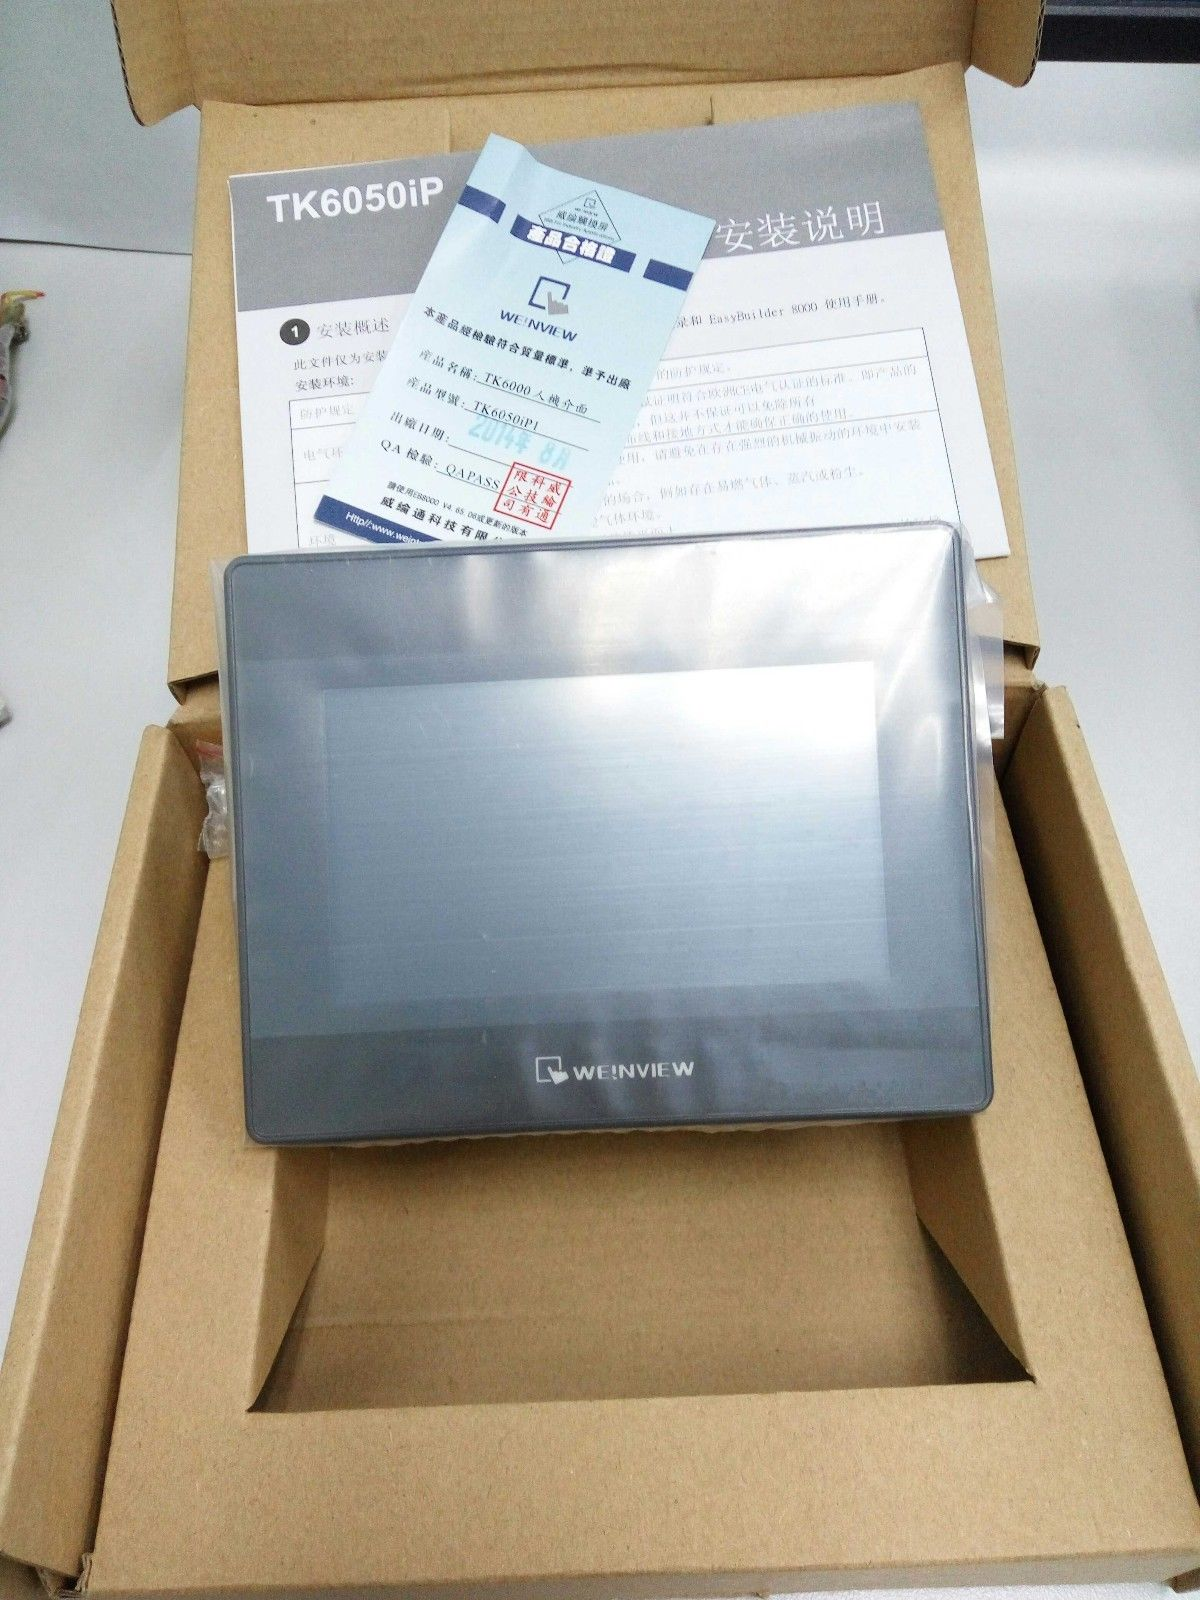 TK6050ip Weinview 4.3inch HMI Touch Screen 480*272 new in box